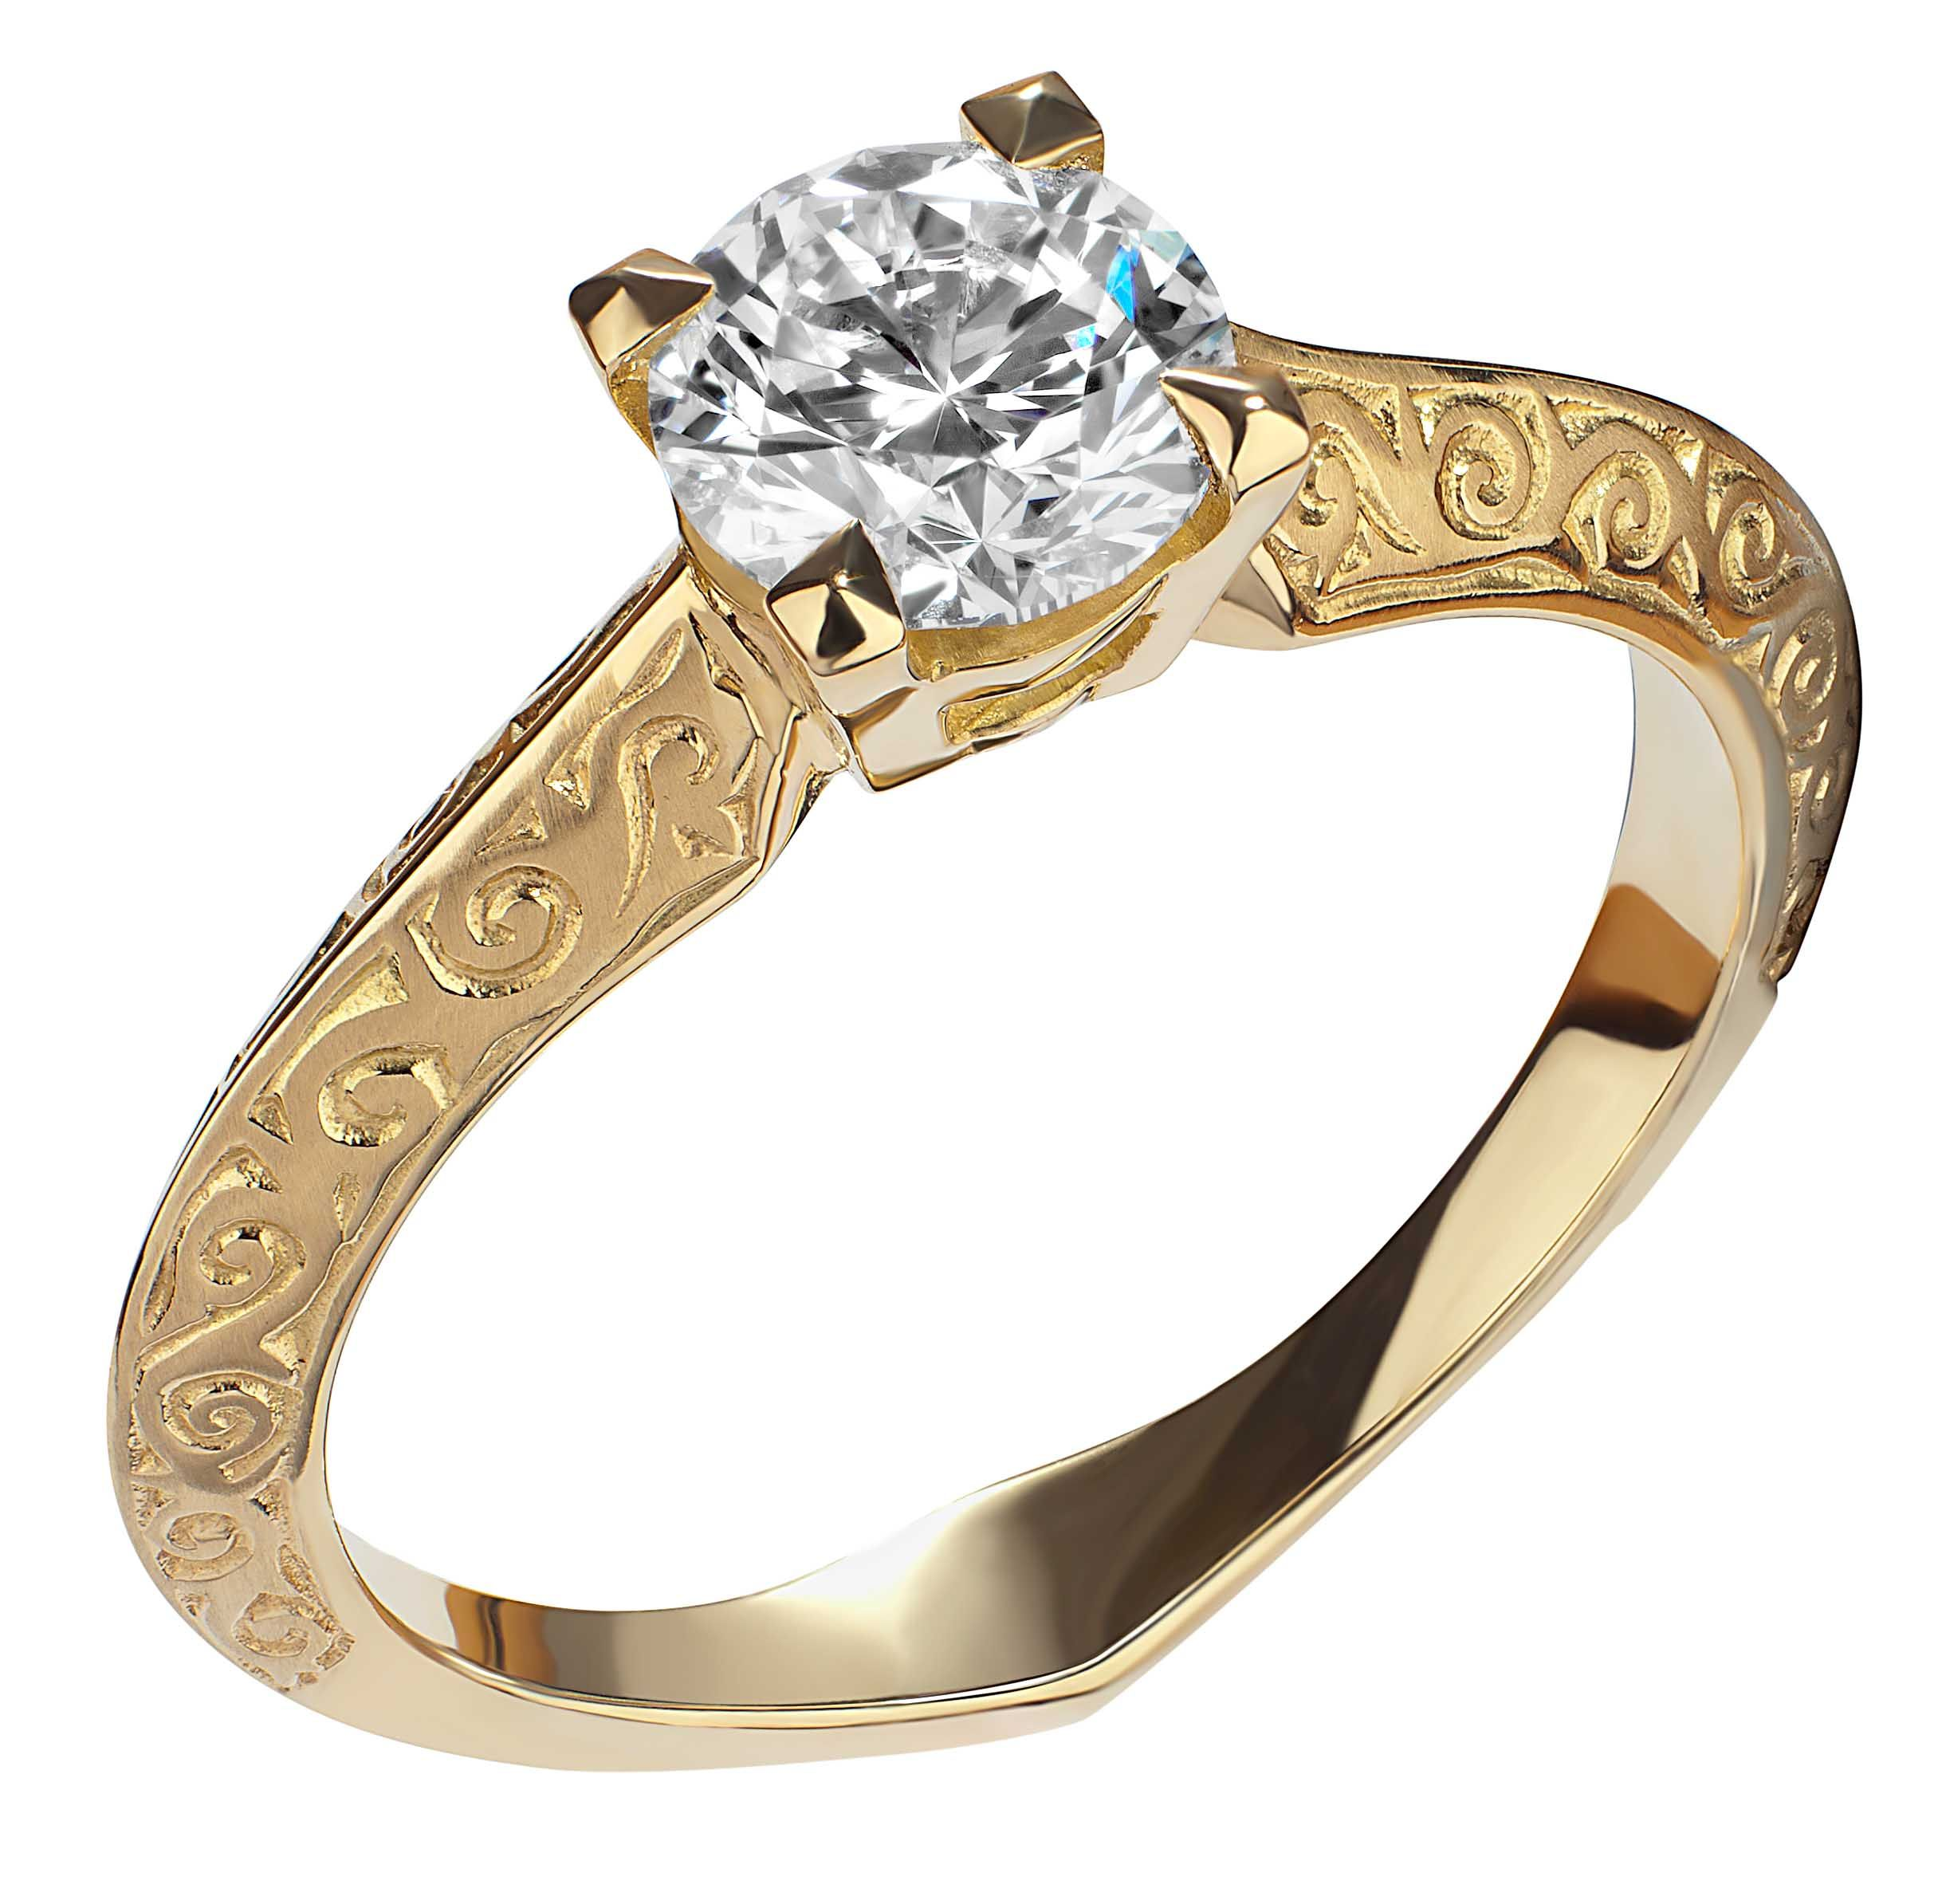 Stephen Webster 18 carat Yellow Gold Engagement Ring with 74ct